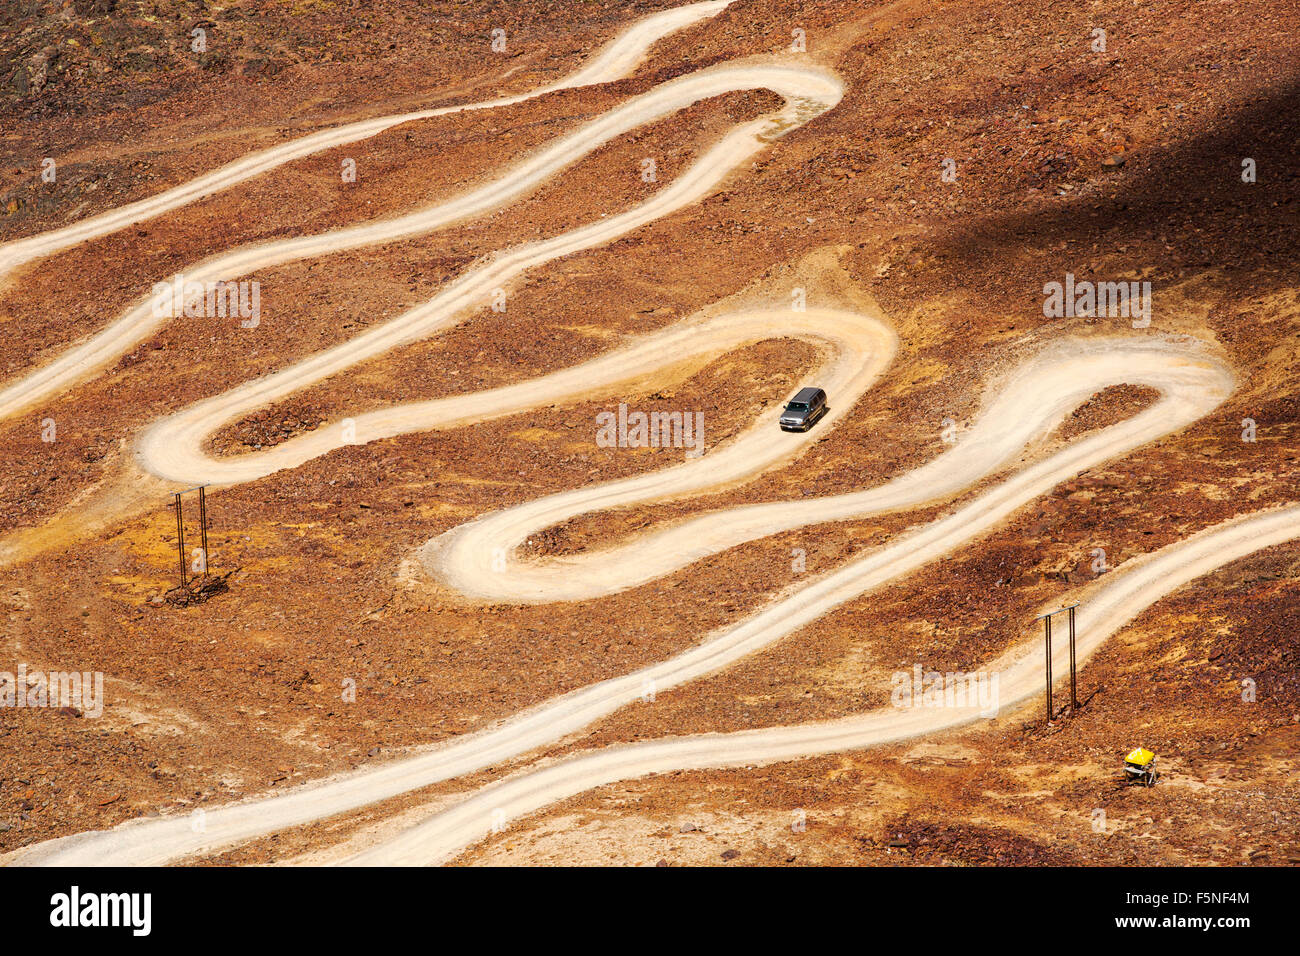 The switchback road that climbs to over 17,000 feet to the peak of Chacaltaya, one of the highest roads in the world, - Stock Image